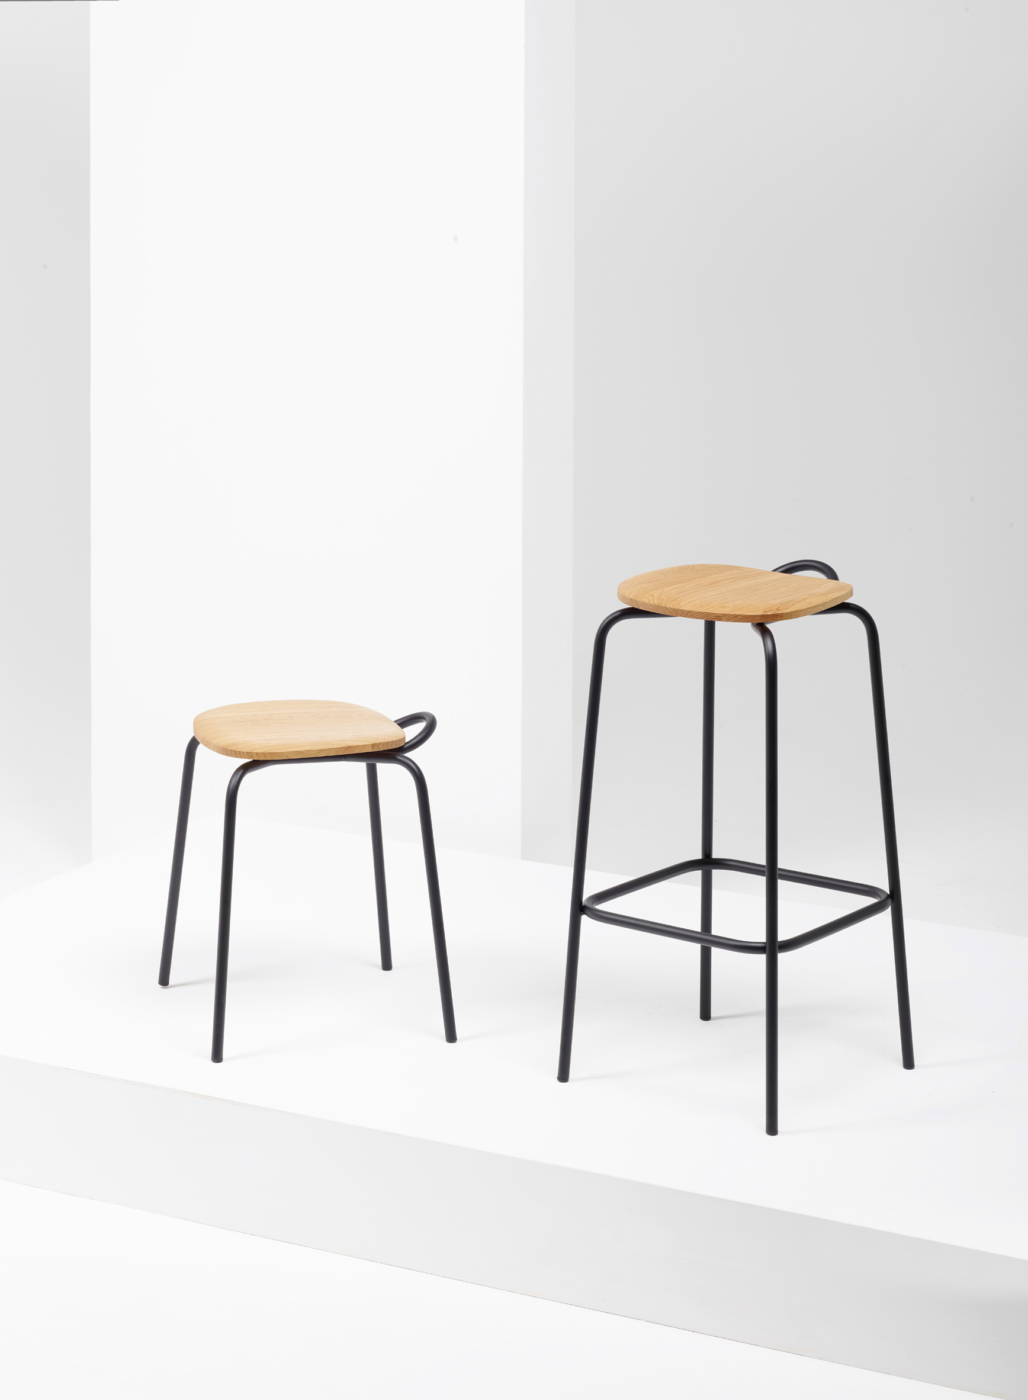 Forcina Low Stool from District